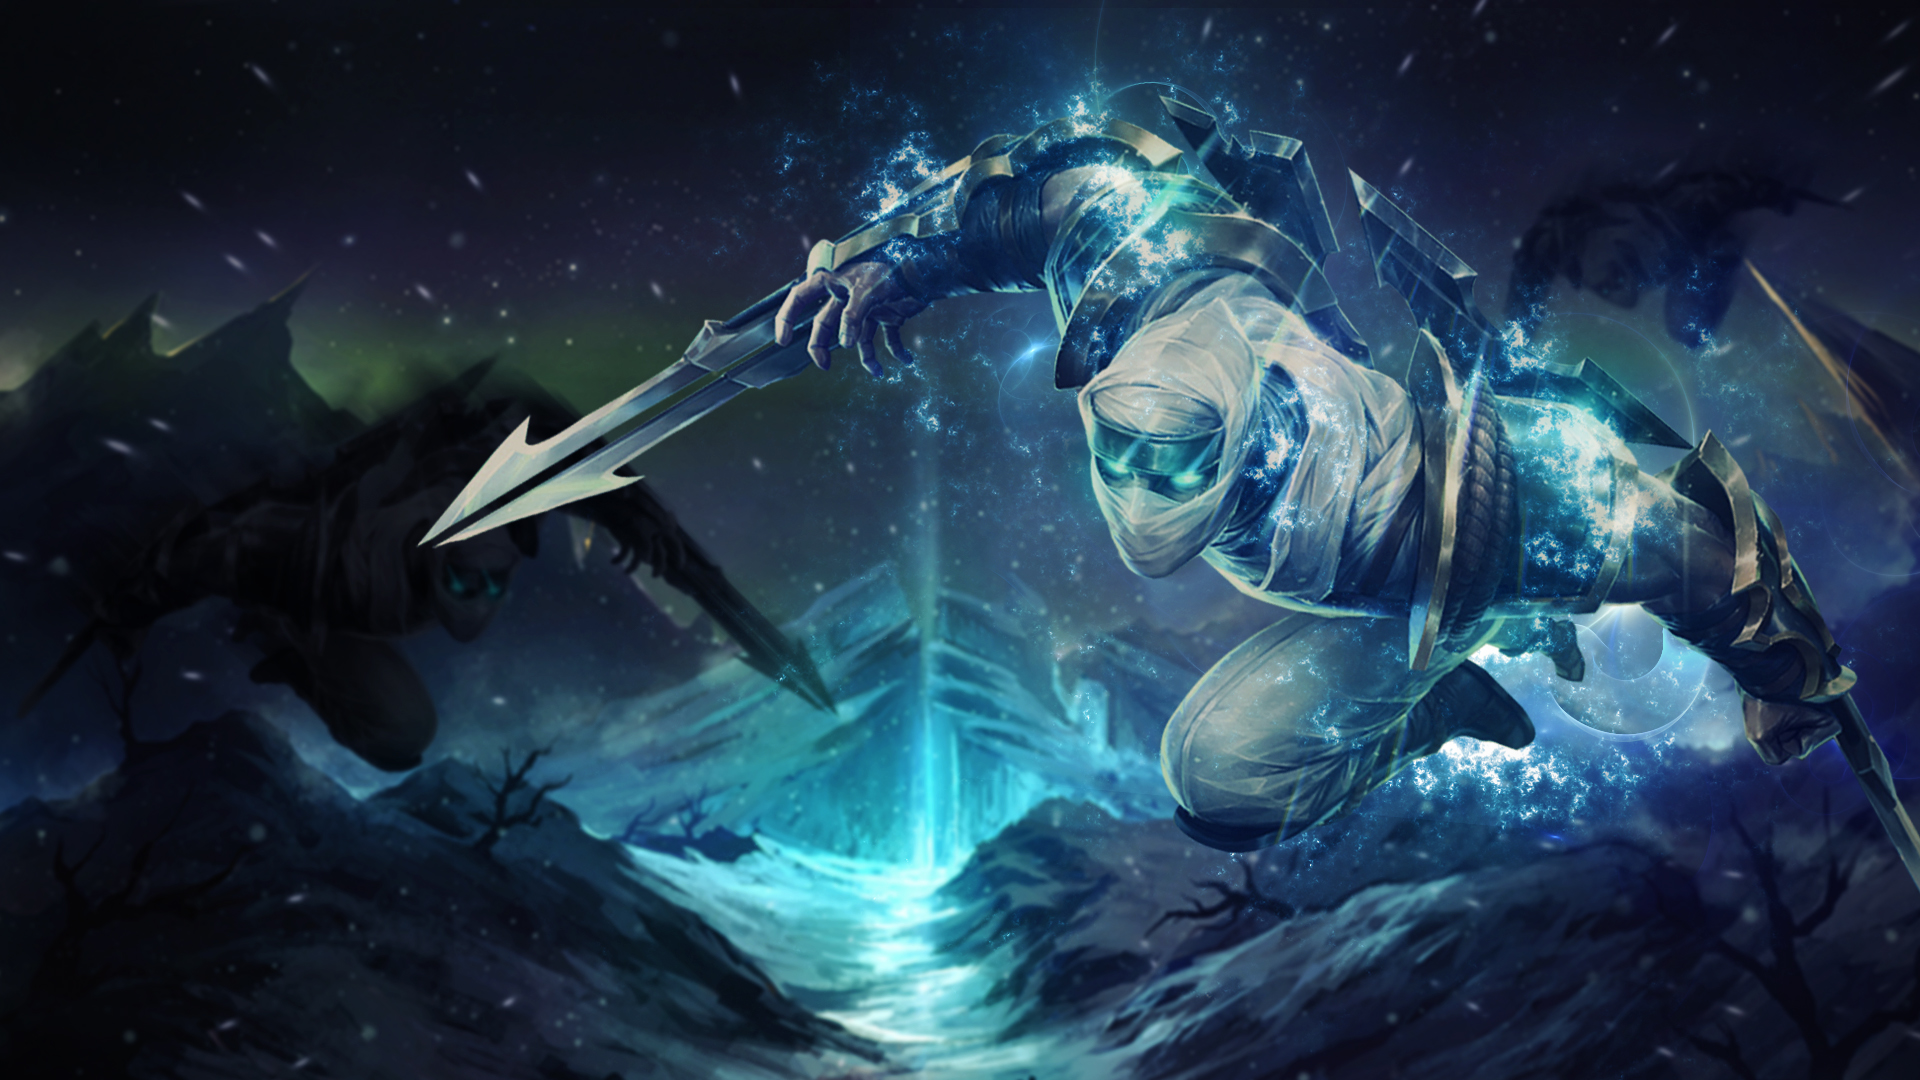 League Of Legends Zed Wallpaper High Definition Is Cool Wallpapers